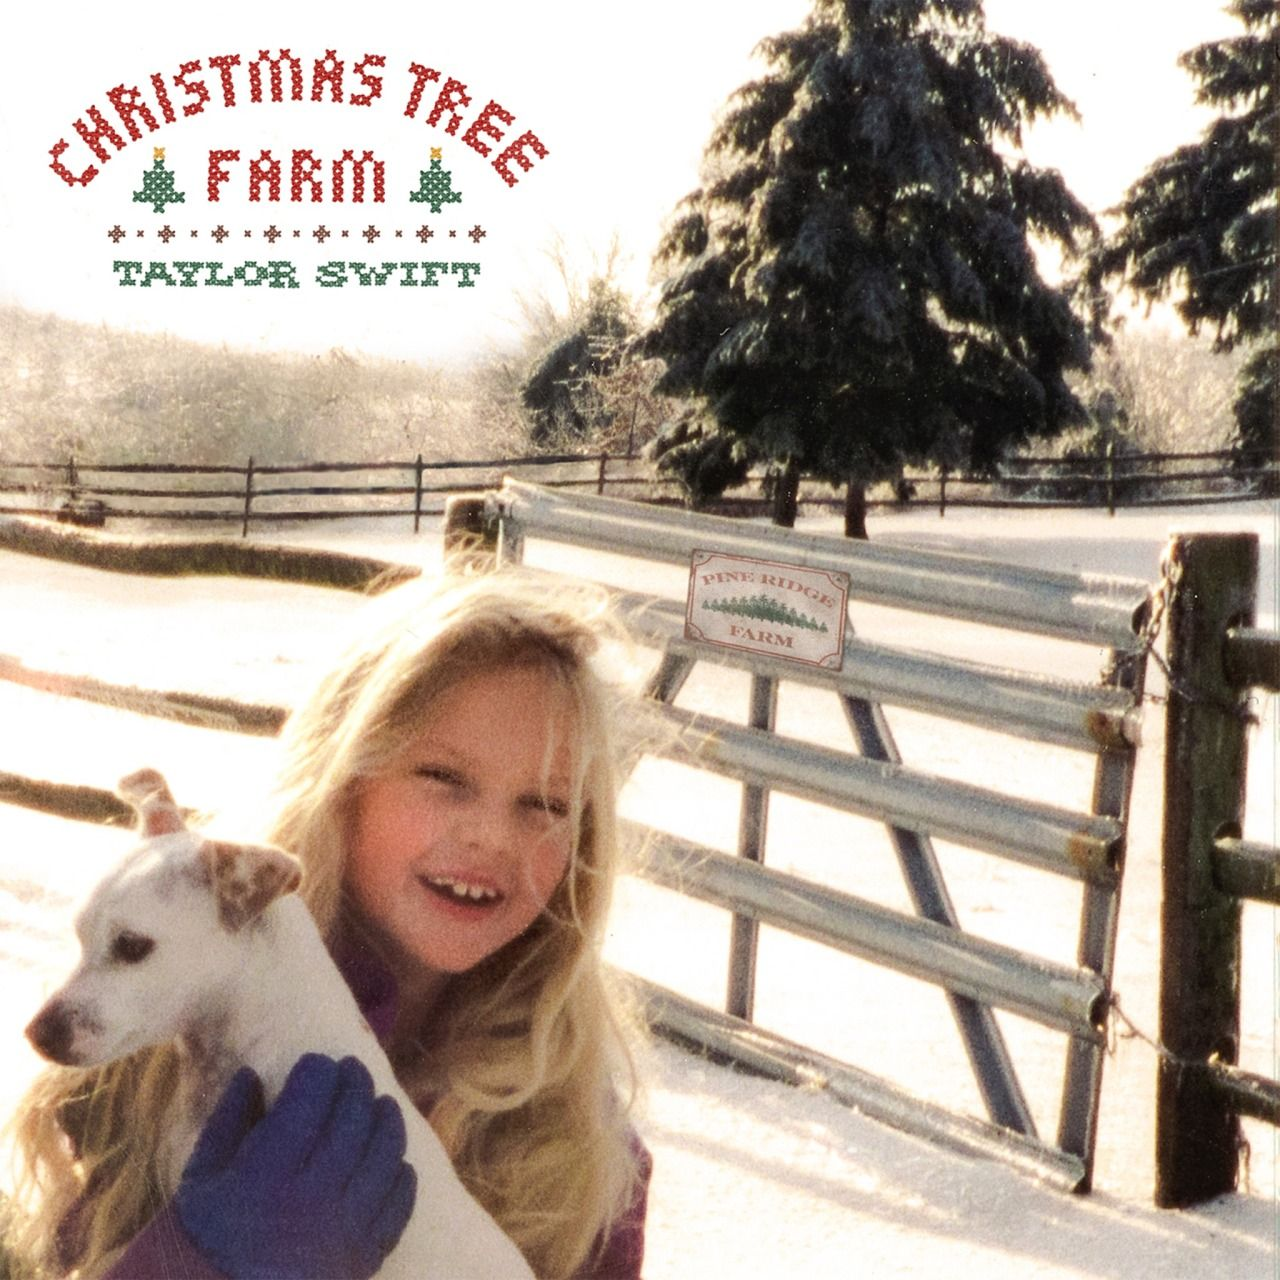 Taylor Swift Christmas Tree Farm By Taylor Swift Taylor Swift Christmas Taylor Swift Childhood Taylor Swift Facts